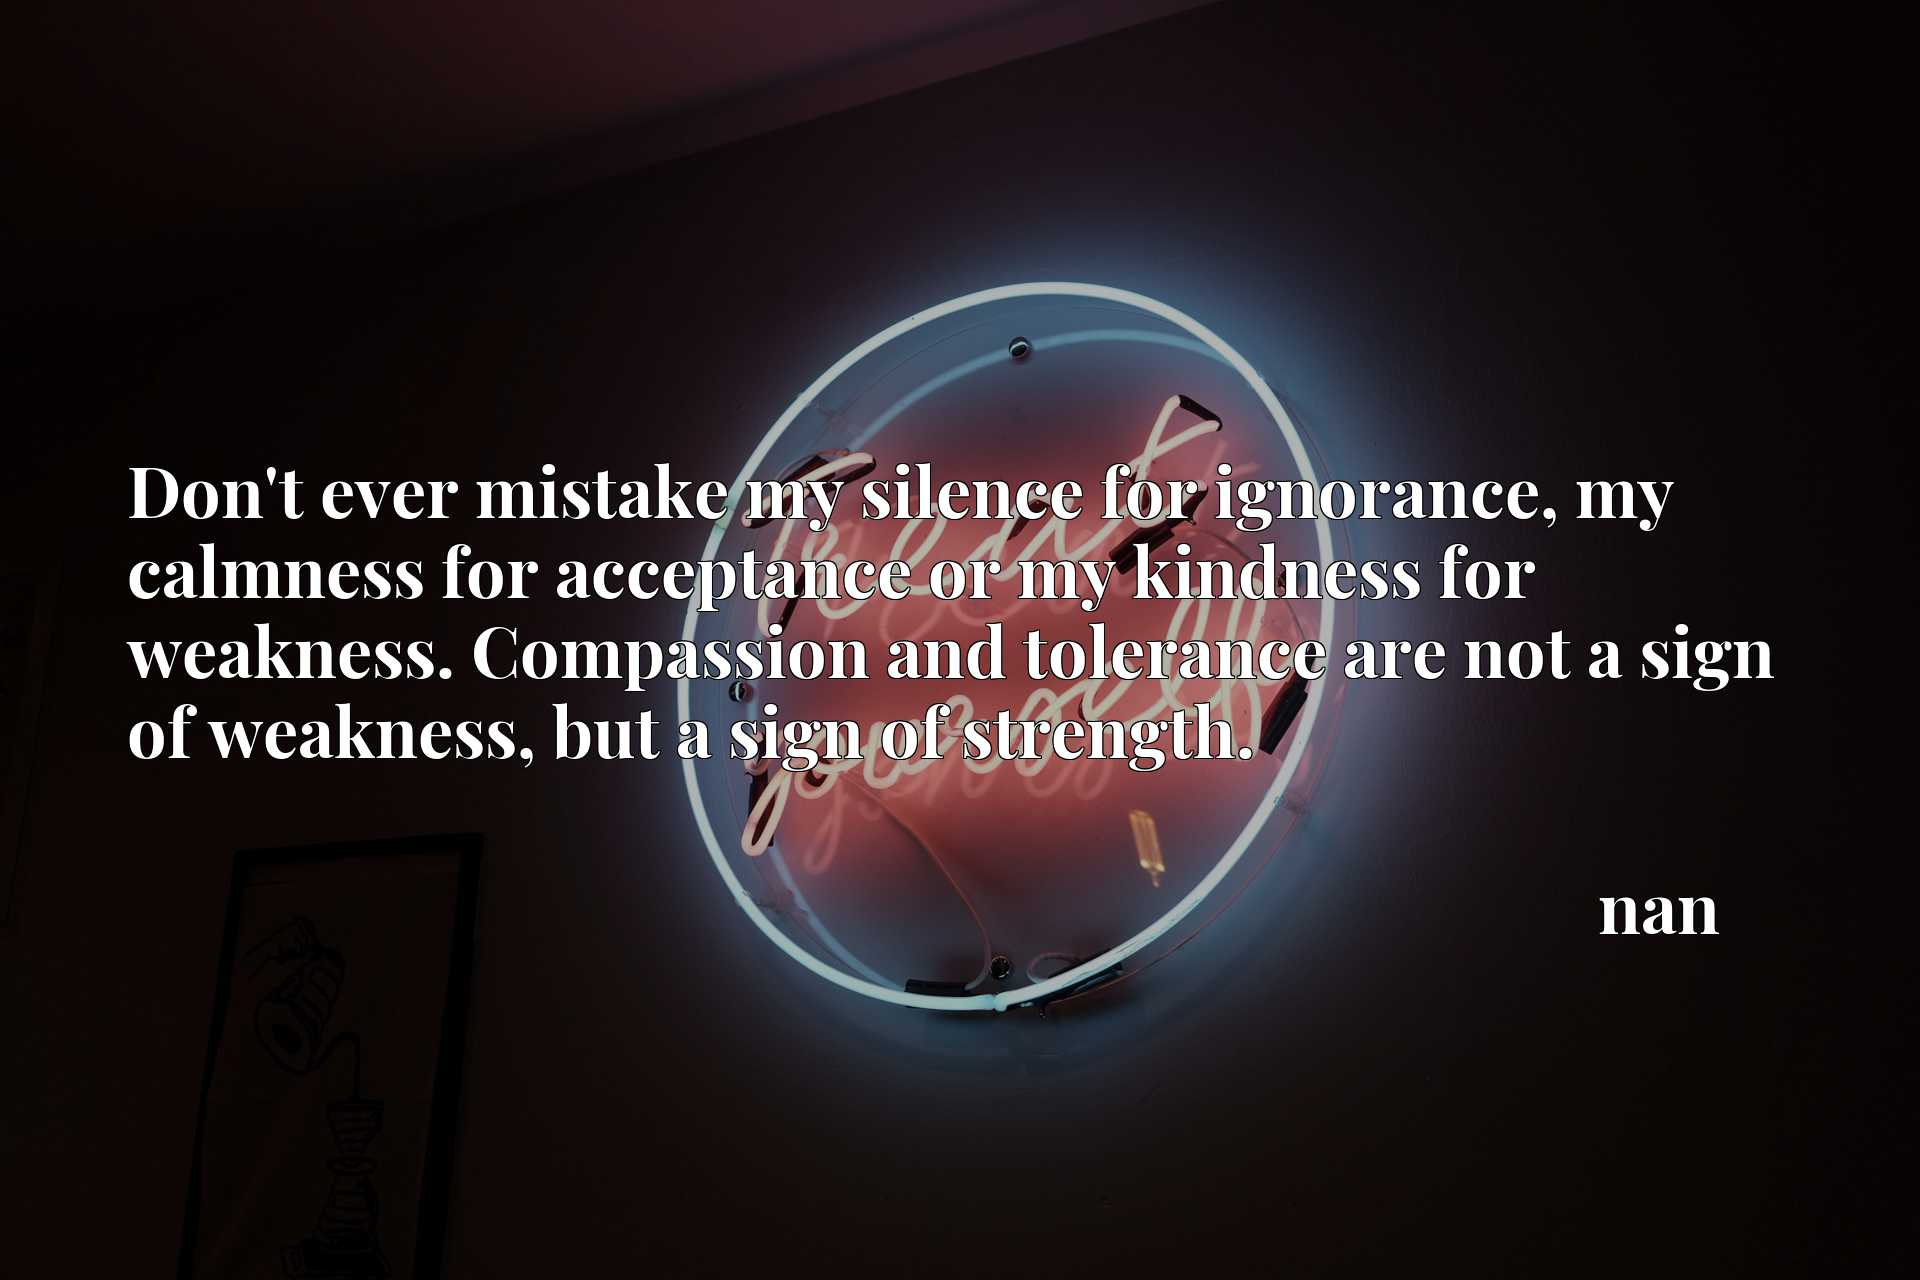 Don't ever mistake my silence for ignorance, my calmness for acceptance or my kindness for weakness. Compassion and tolerance are not a sign of weakness, but a sign of strength.